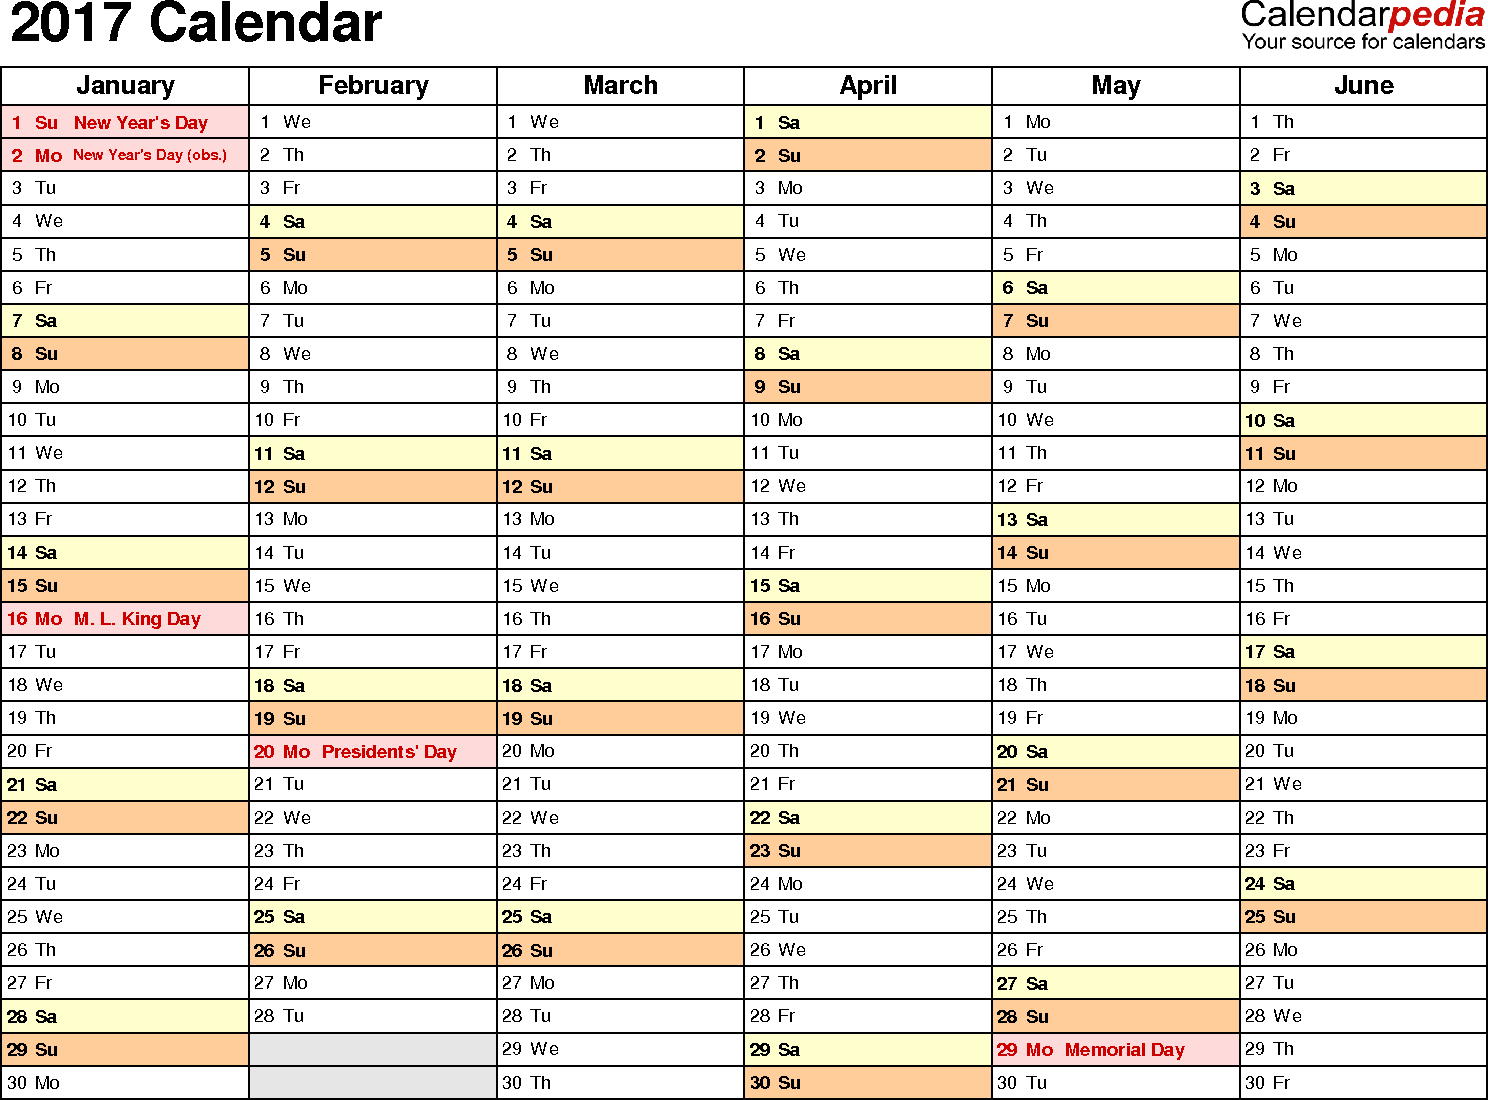 Ediblewildsus  Pleasant  Calendar  Download  Free Printable Excel Templates Xls With Luxury Template   Calendar For Excel Months Horizontally  Pages Landscape Orientation With Attractive Whisker Plot Excel Also Excel Formula Greater Than In Addition Implementation Plan Template Excel And Excel Database Query As Well As Dde Excel Additionally Modulus Excel From Calendarpediacom With Ediblewildsus  Luxury  Calendar  Download  Free Printable Excel Templates Xls With Attractive Template   Calendar For Excel Months Horizontally  Pages Landscape Orientation And Pleasant Whisker Plot Excel Also Excel Formula Greater Than In Addition Implementation Plan Template Excel From Calendarpediacom